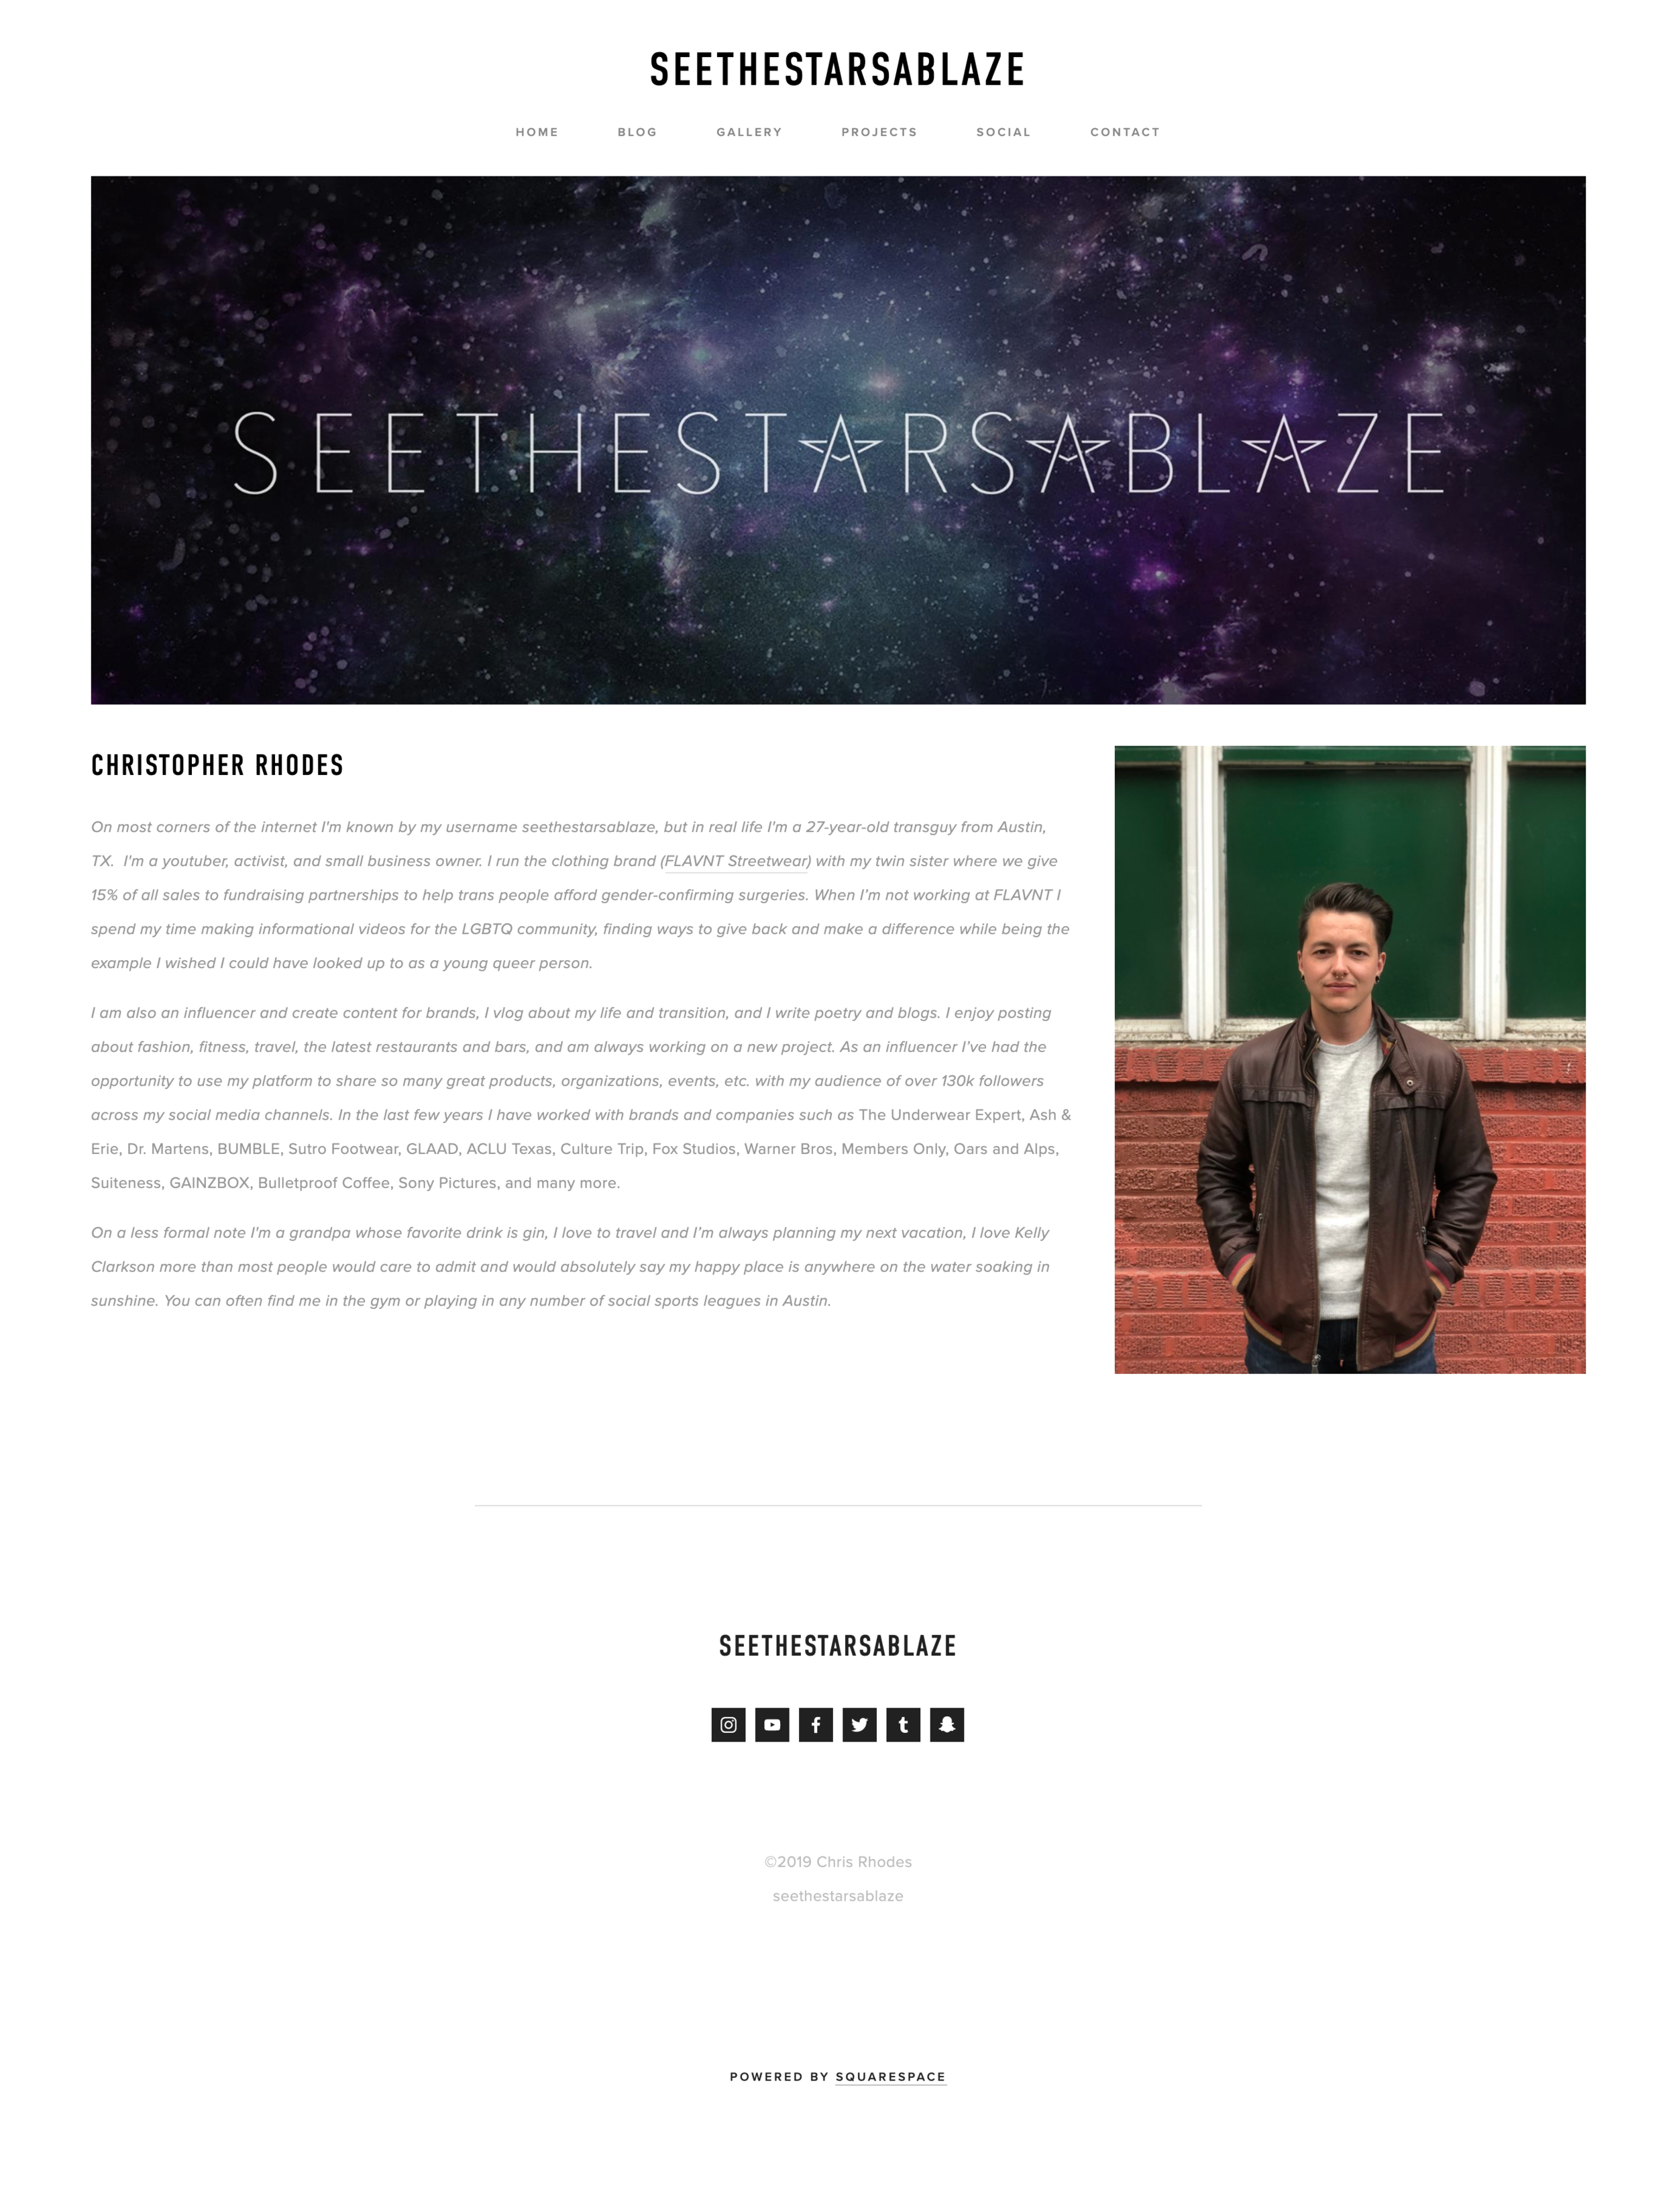 screencapture-chris-rhodes-t6wy-squarespace-2019-06-03-15_42_08.png